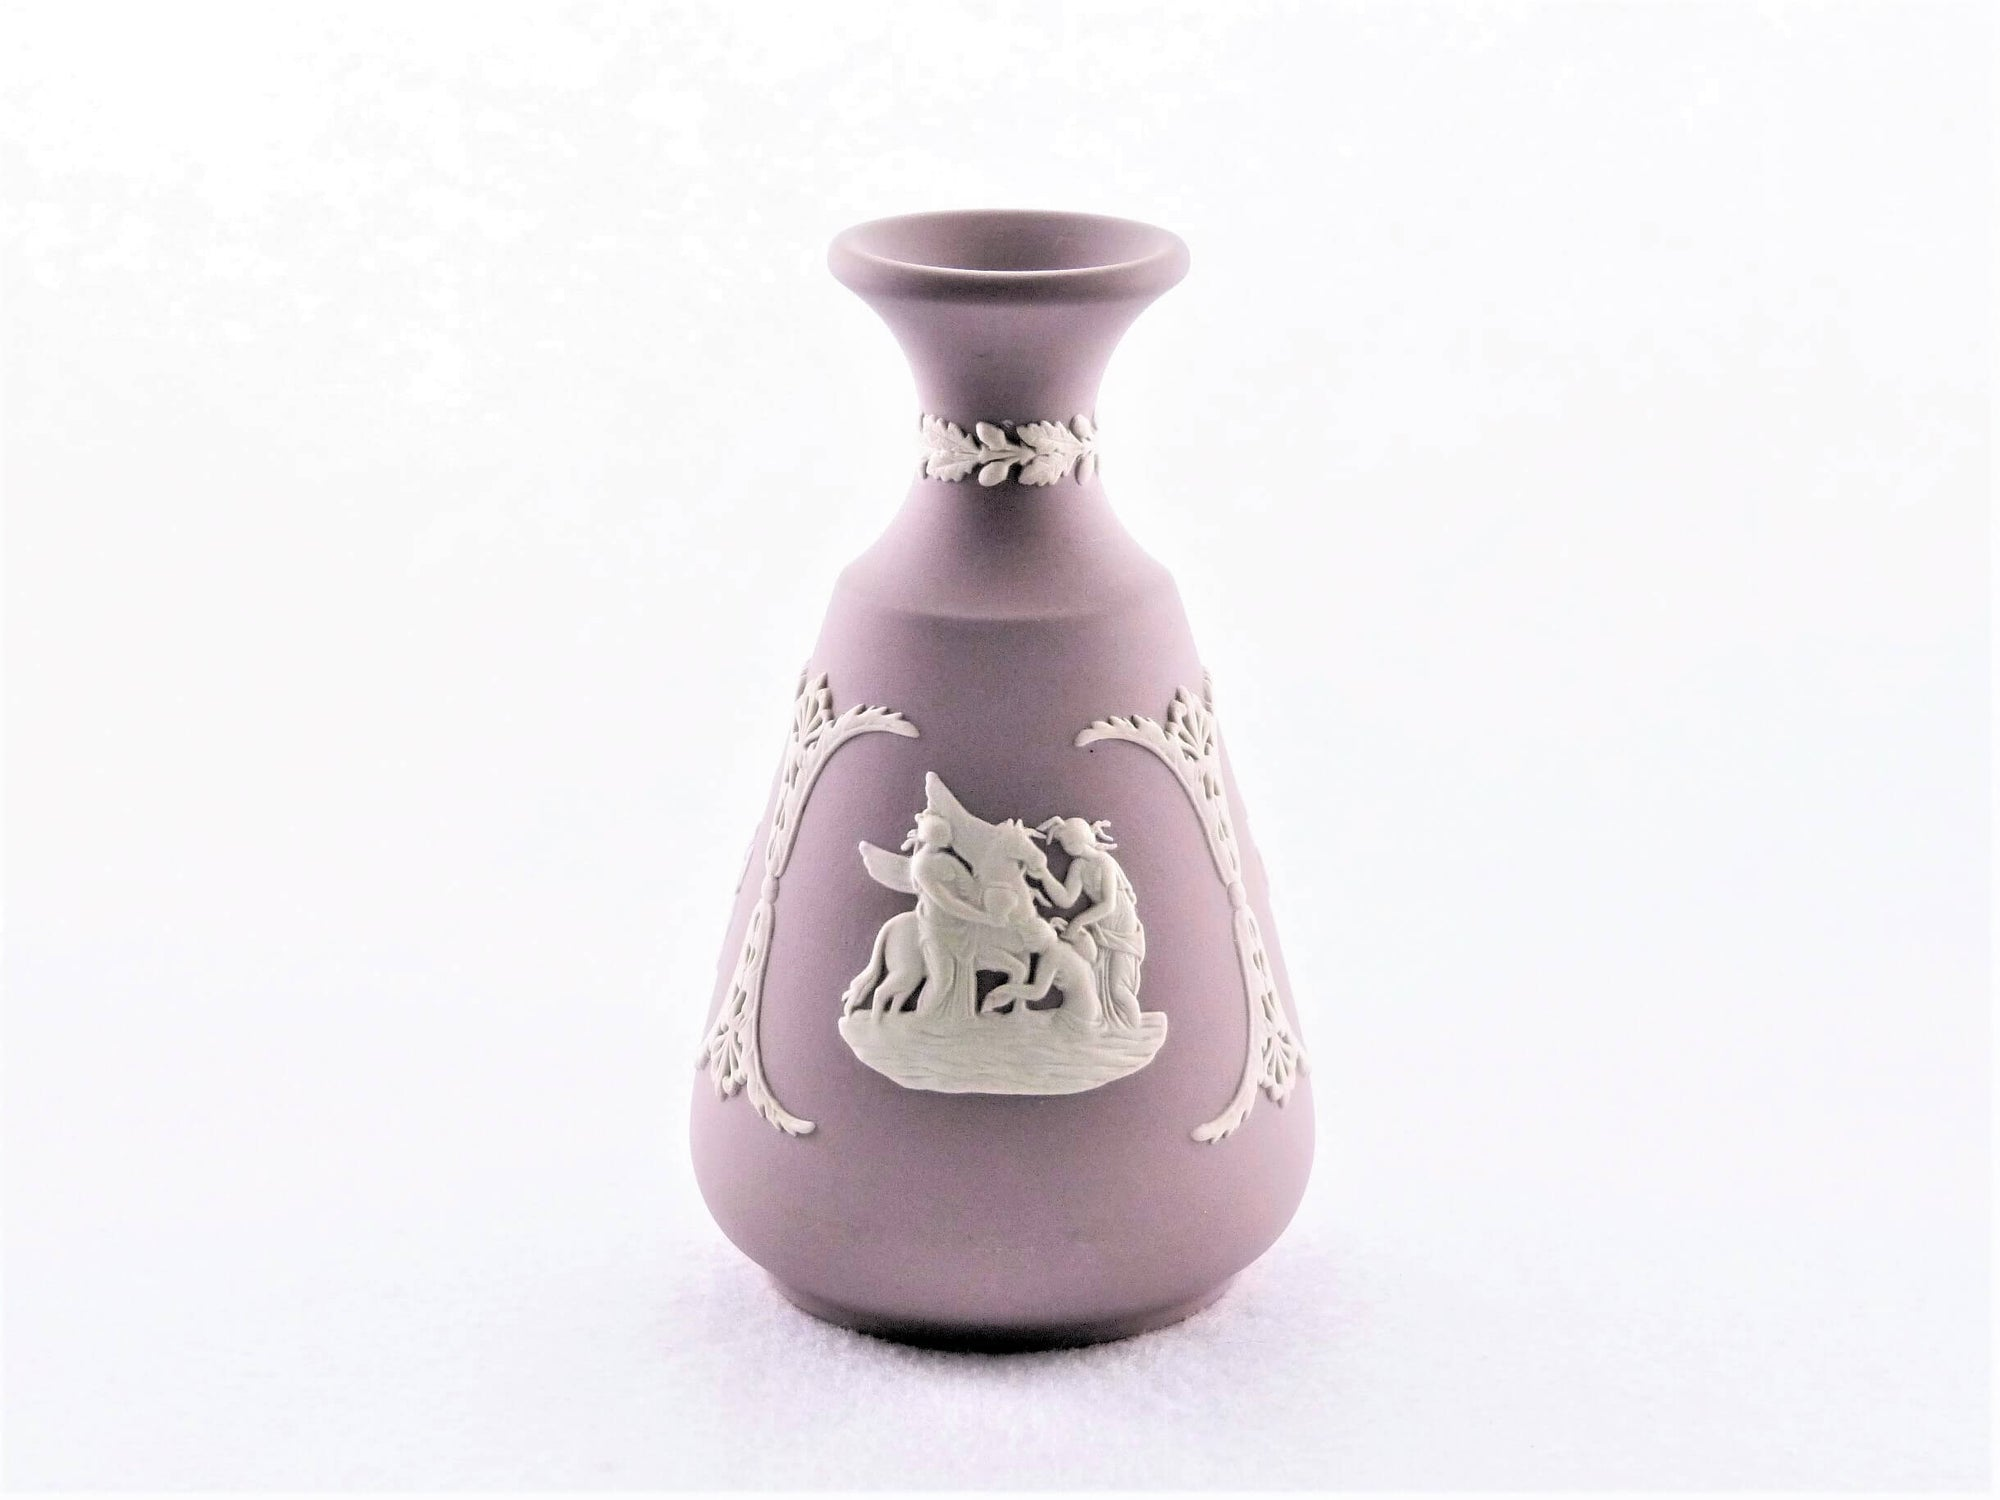 Lilac Wedgwood Jasperware Vase, Pretty Small Vase